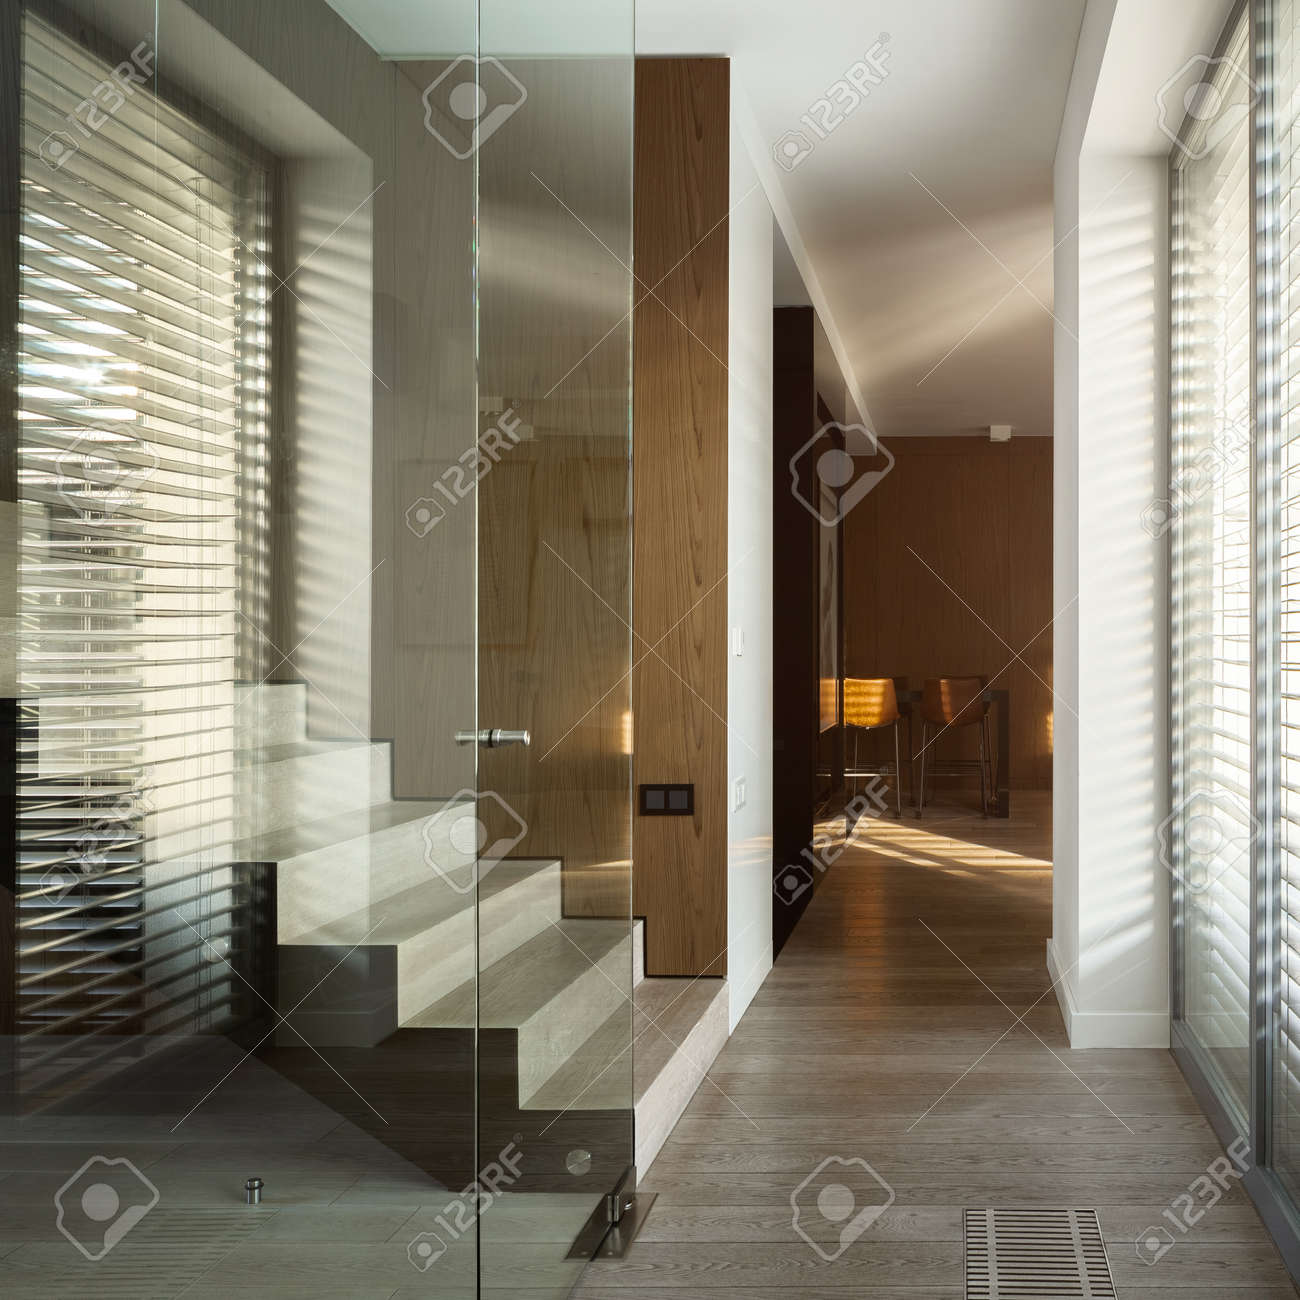 Modern wooden stairs behind glass wall in stylish home corridor with big window - 158294451